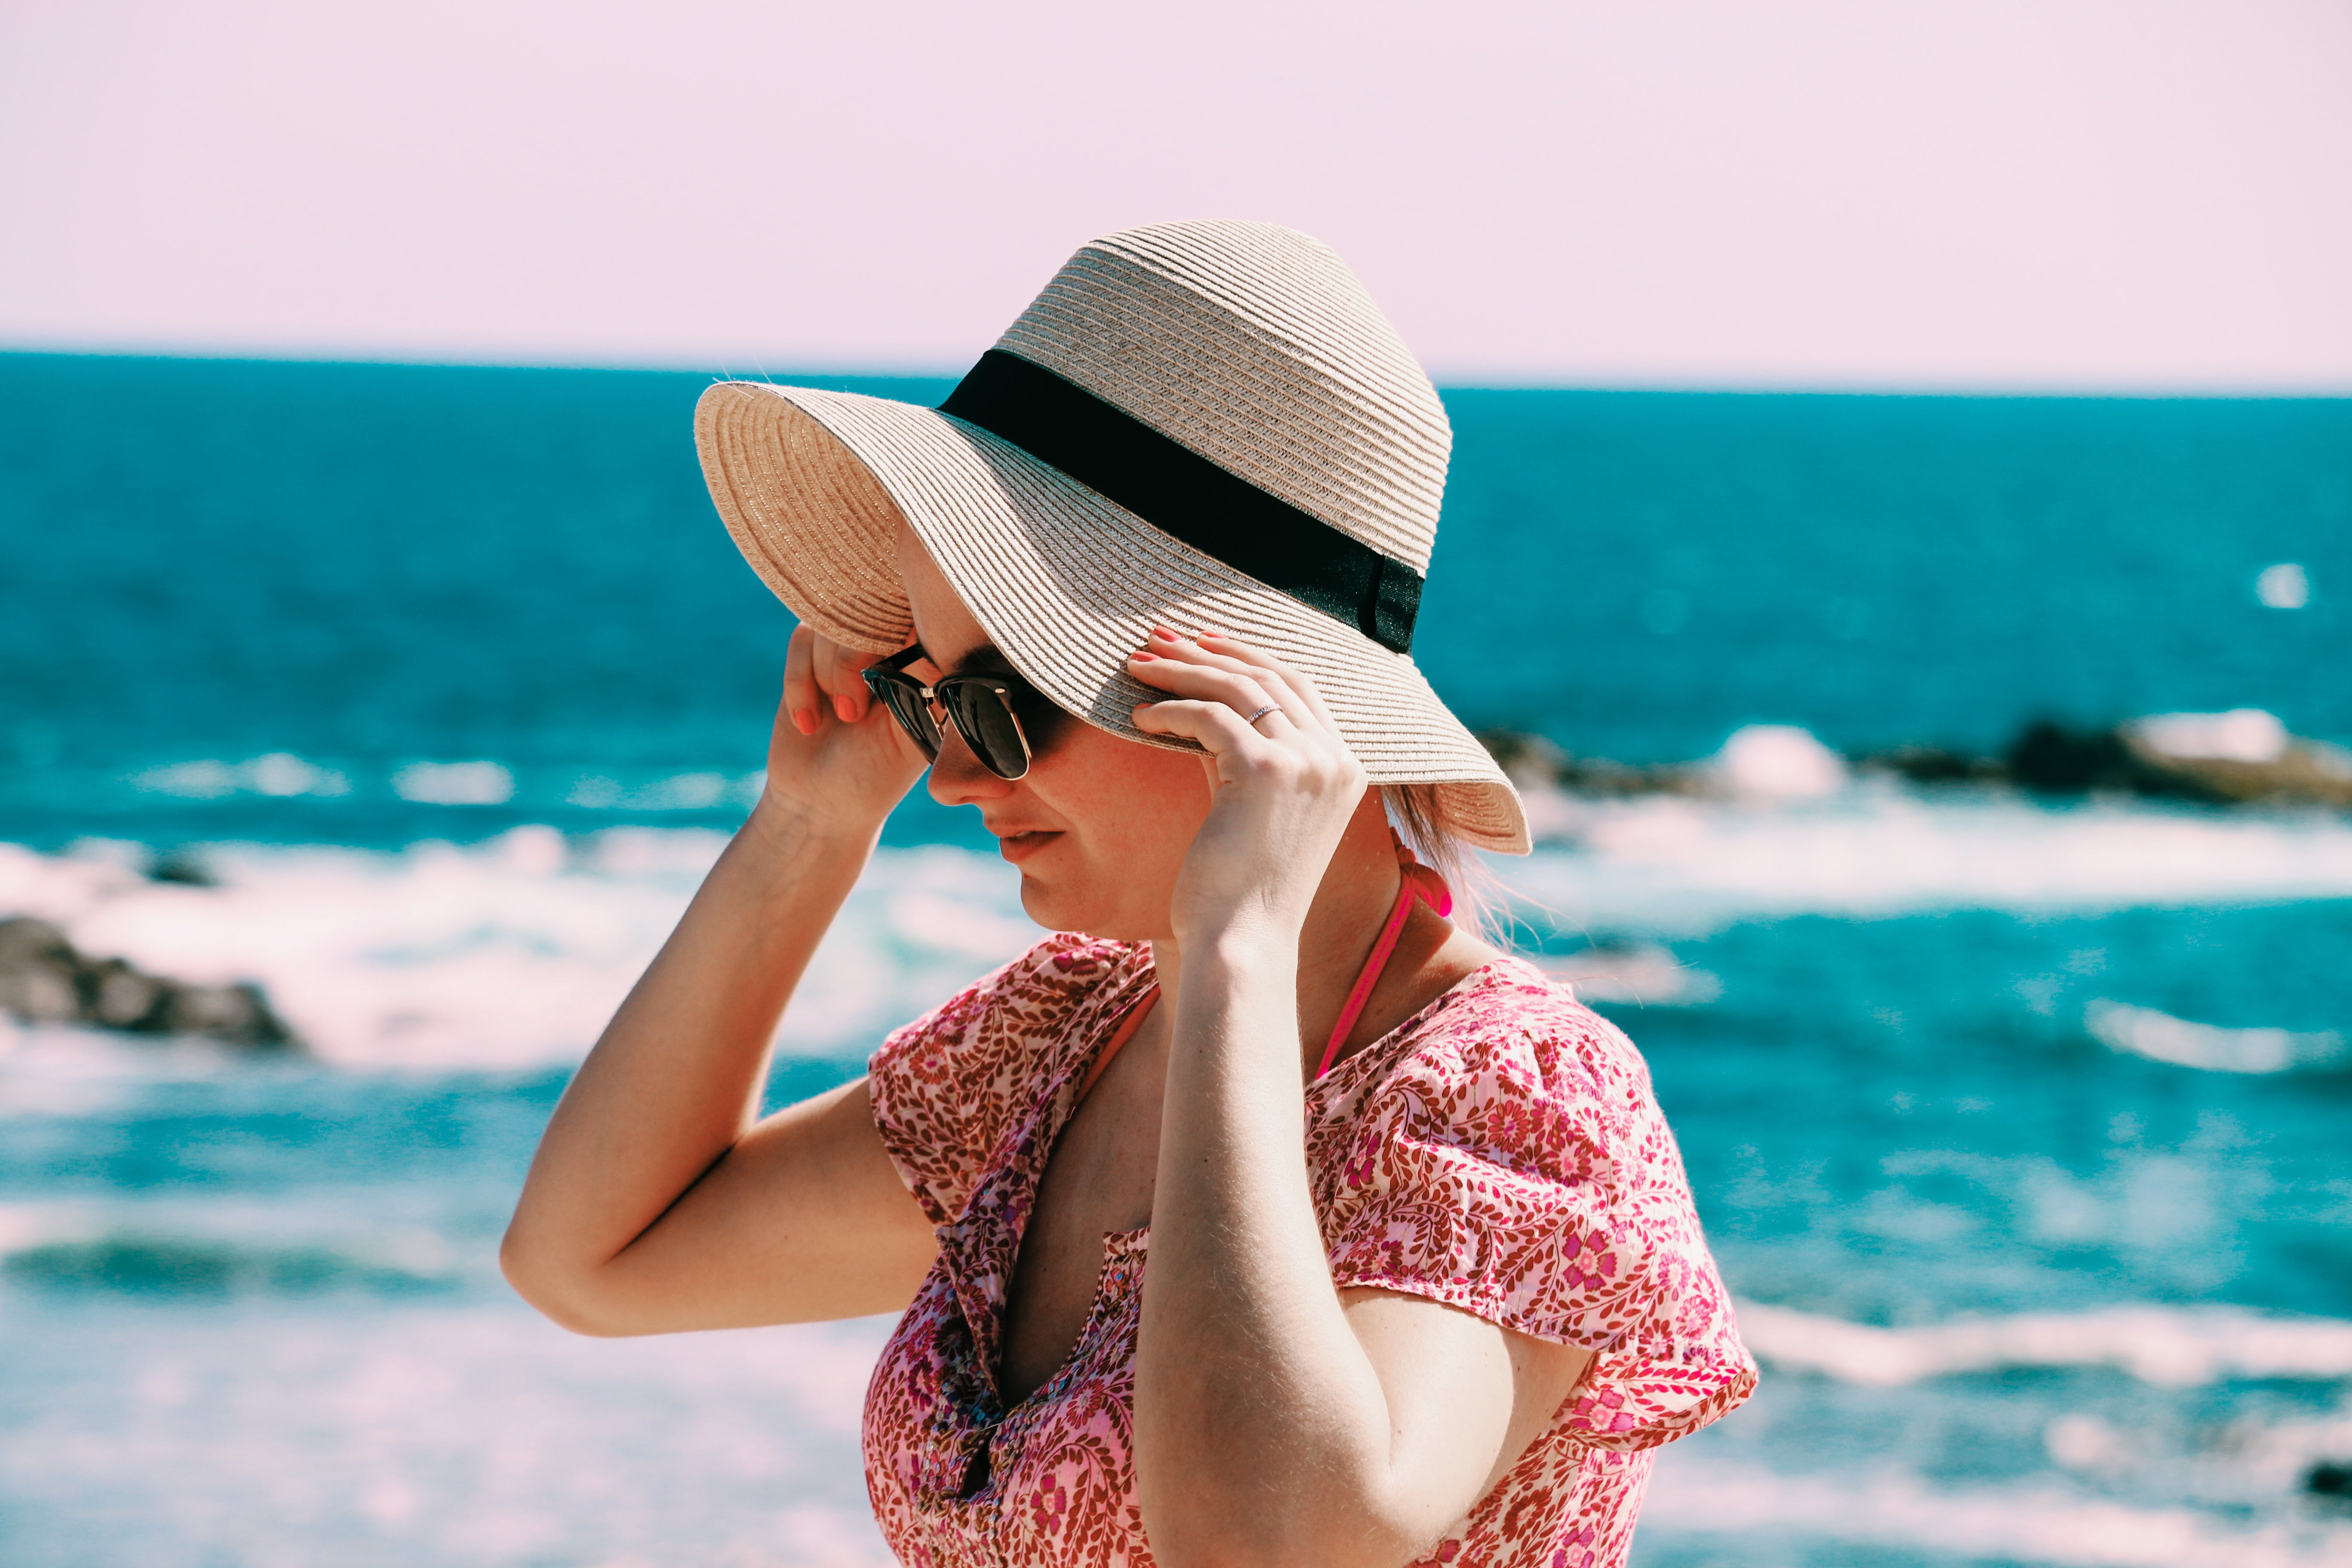 Selective Focus Photo of Woman Wears Beige Sun Hat Stand Behind Body of Water a Daytime